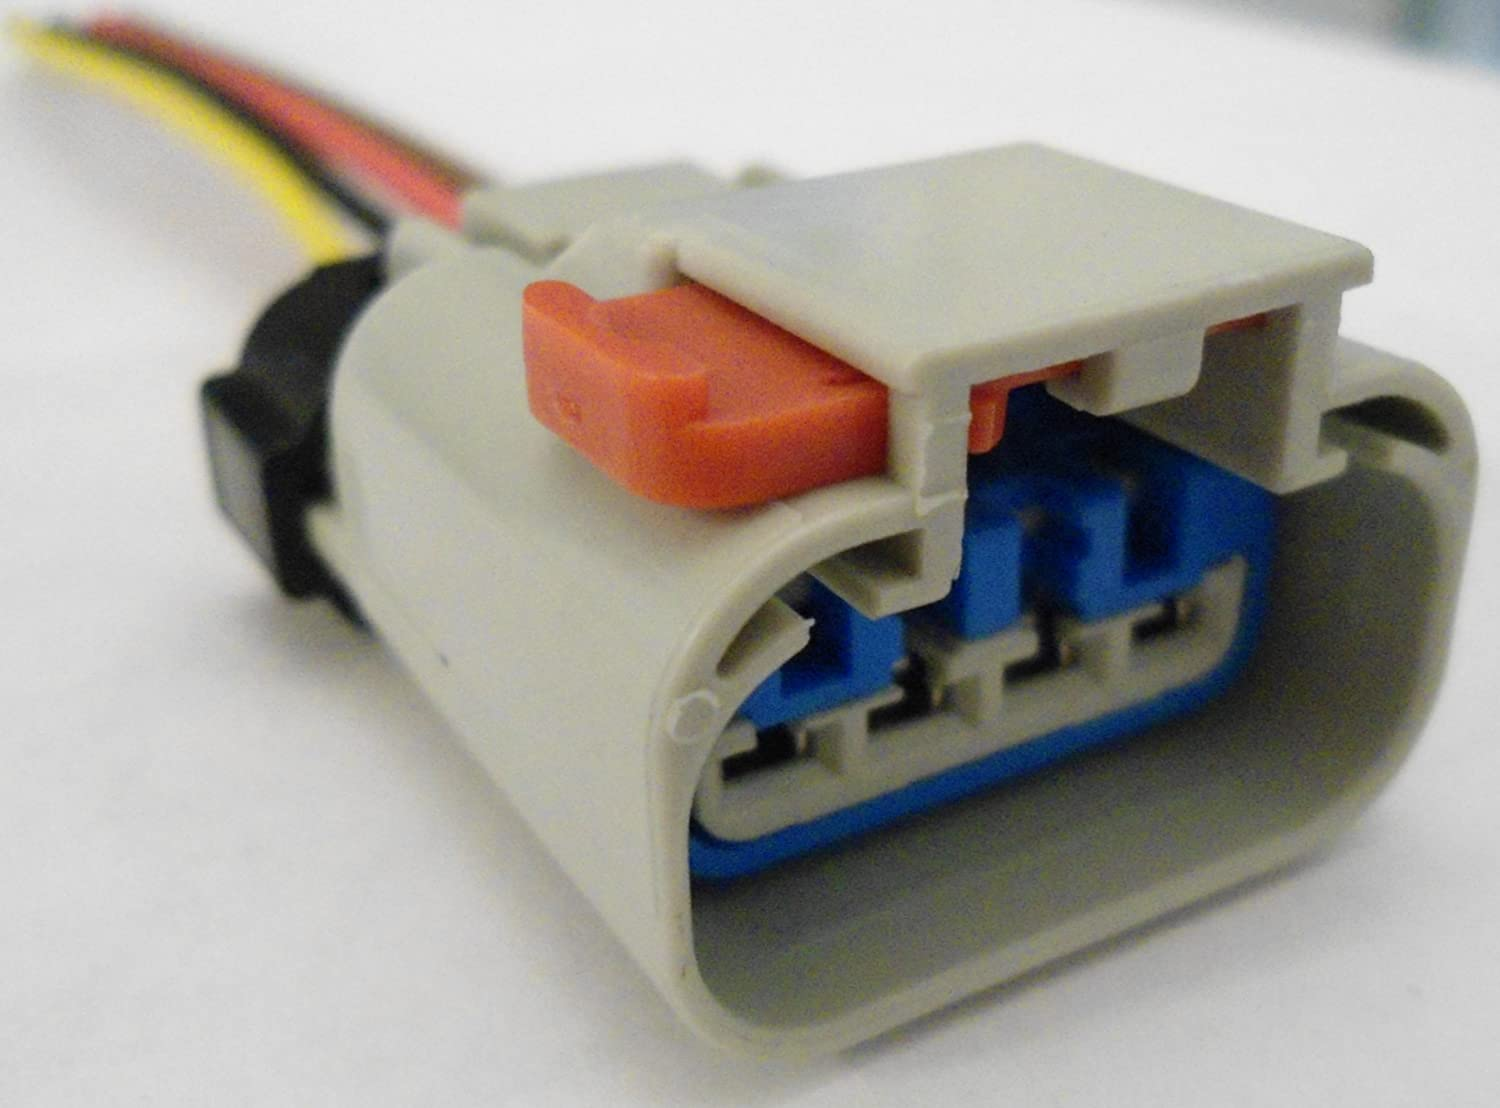 81P6QAa4uYL._SL1500_ amazon com connector for fuel pump sender wiring harness gas  at reclaimingppi.co